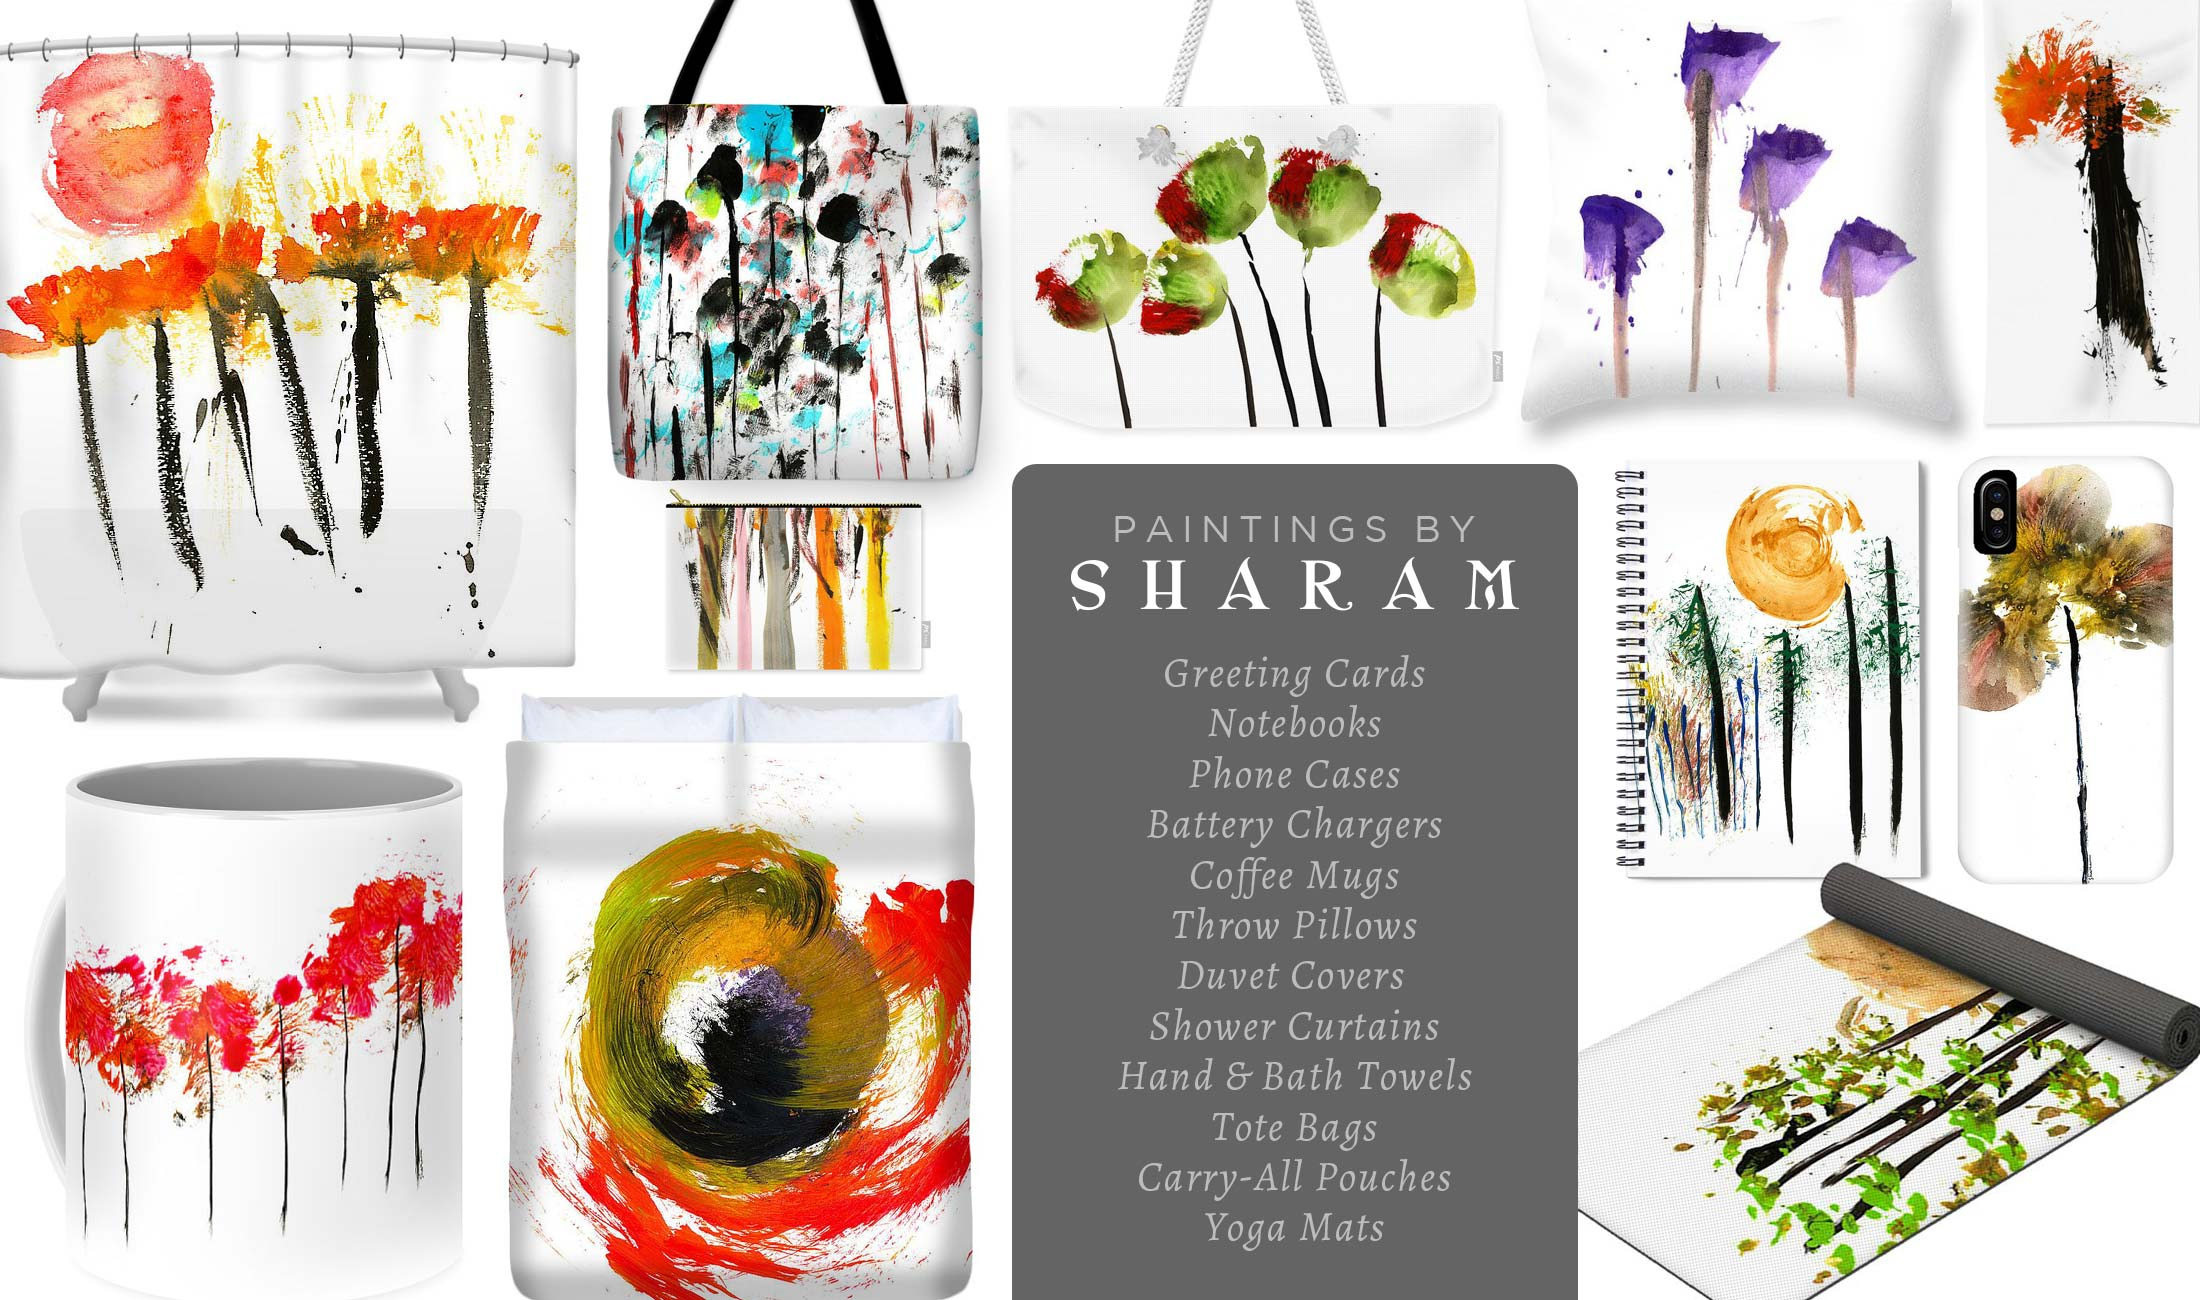 Sharam Paintings - Accessories